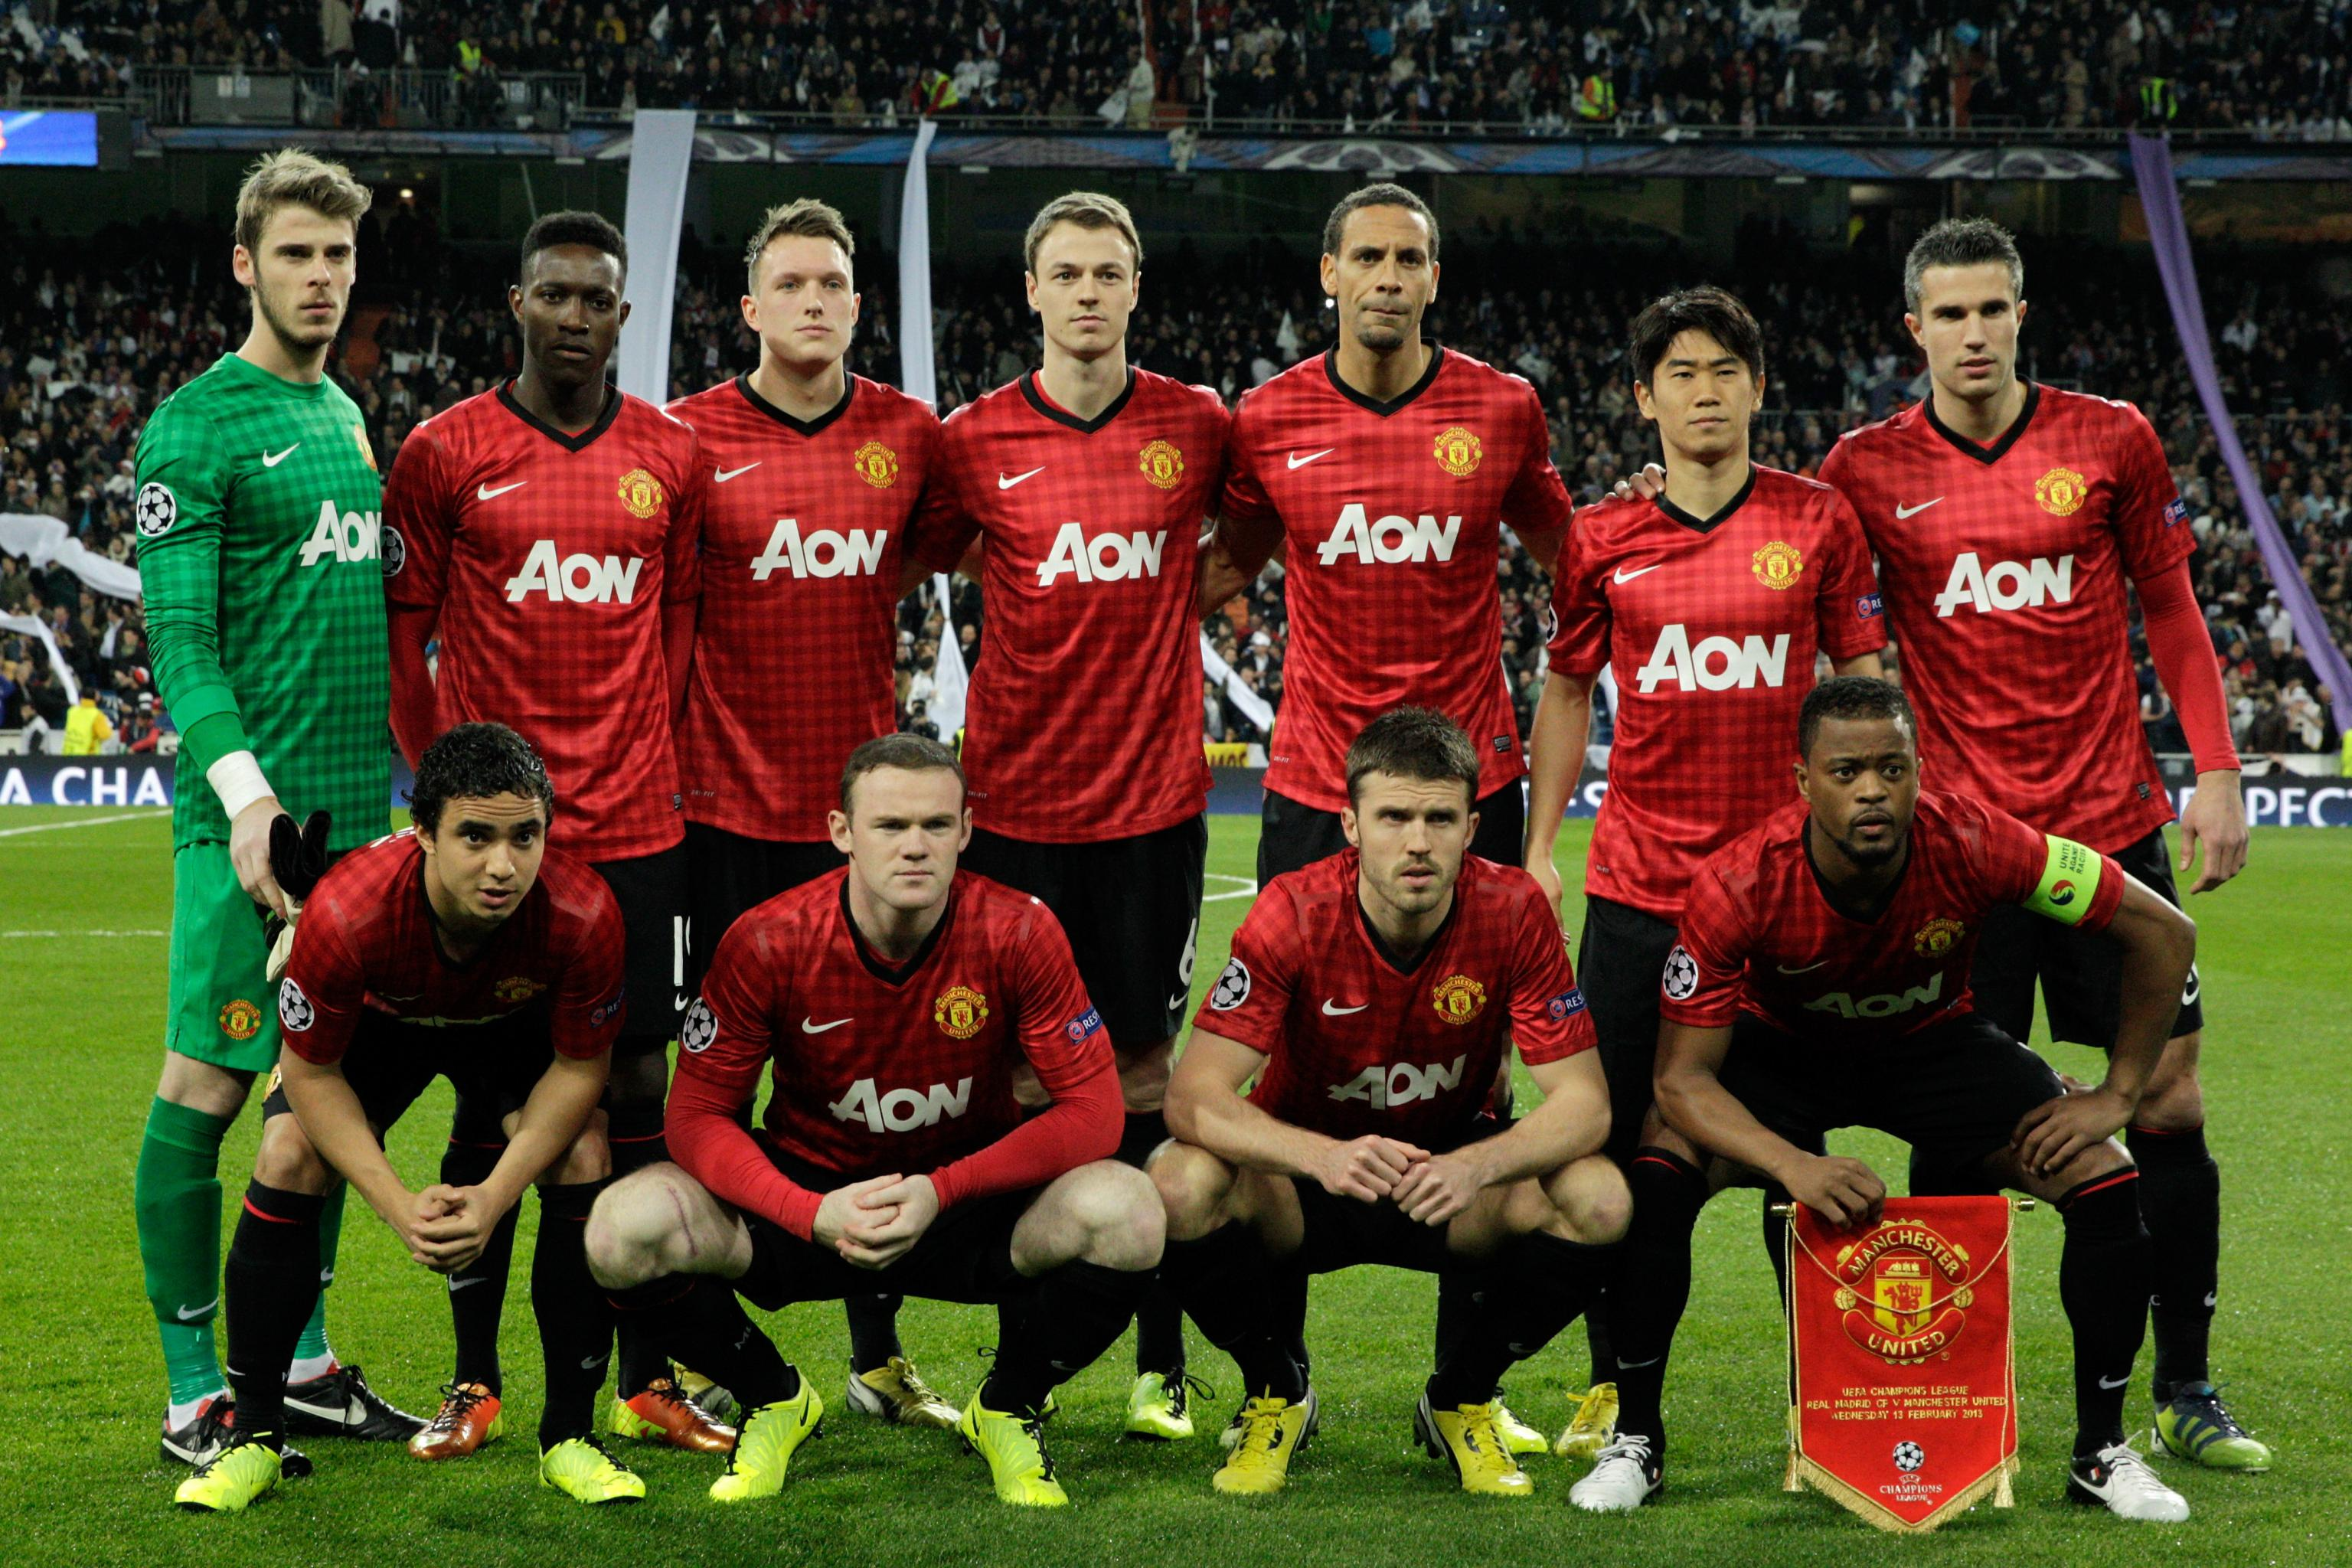 What Will Be Manchester United S Starting Xi For The 2013 14 Season Bleacher Report Latest News Videos And Highlights